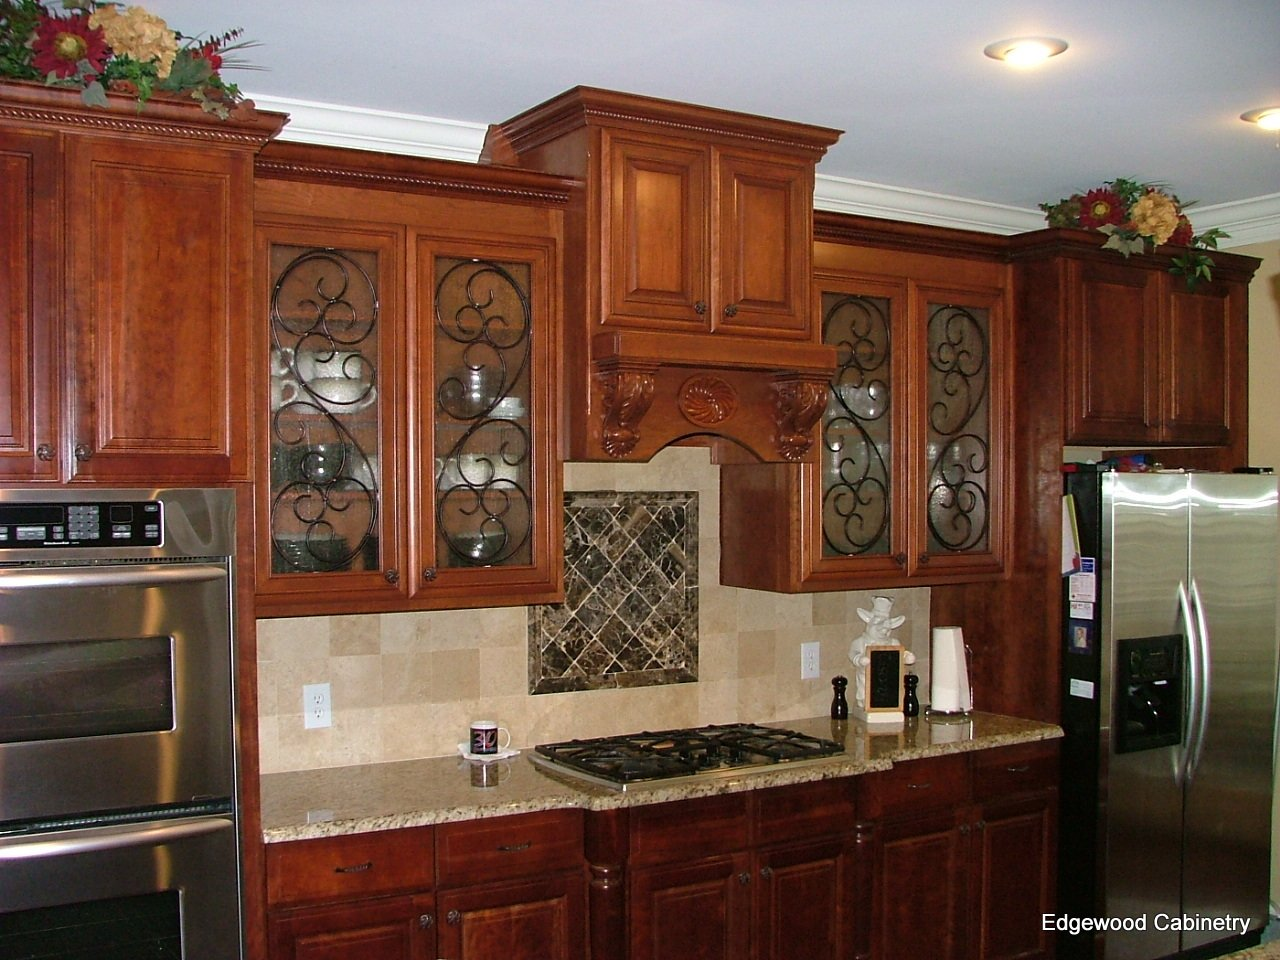 Kitchen cabinets front designs - View Larger Image